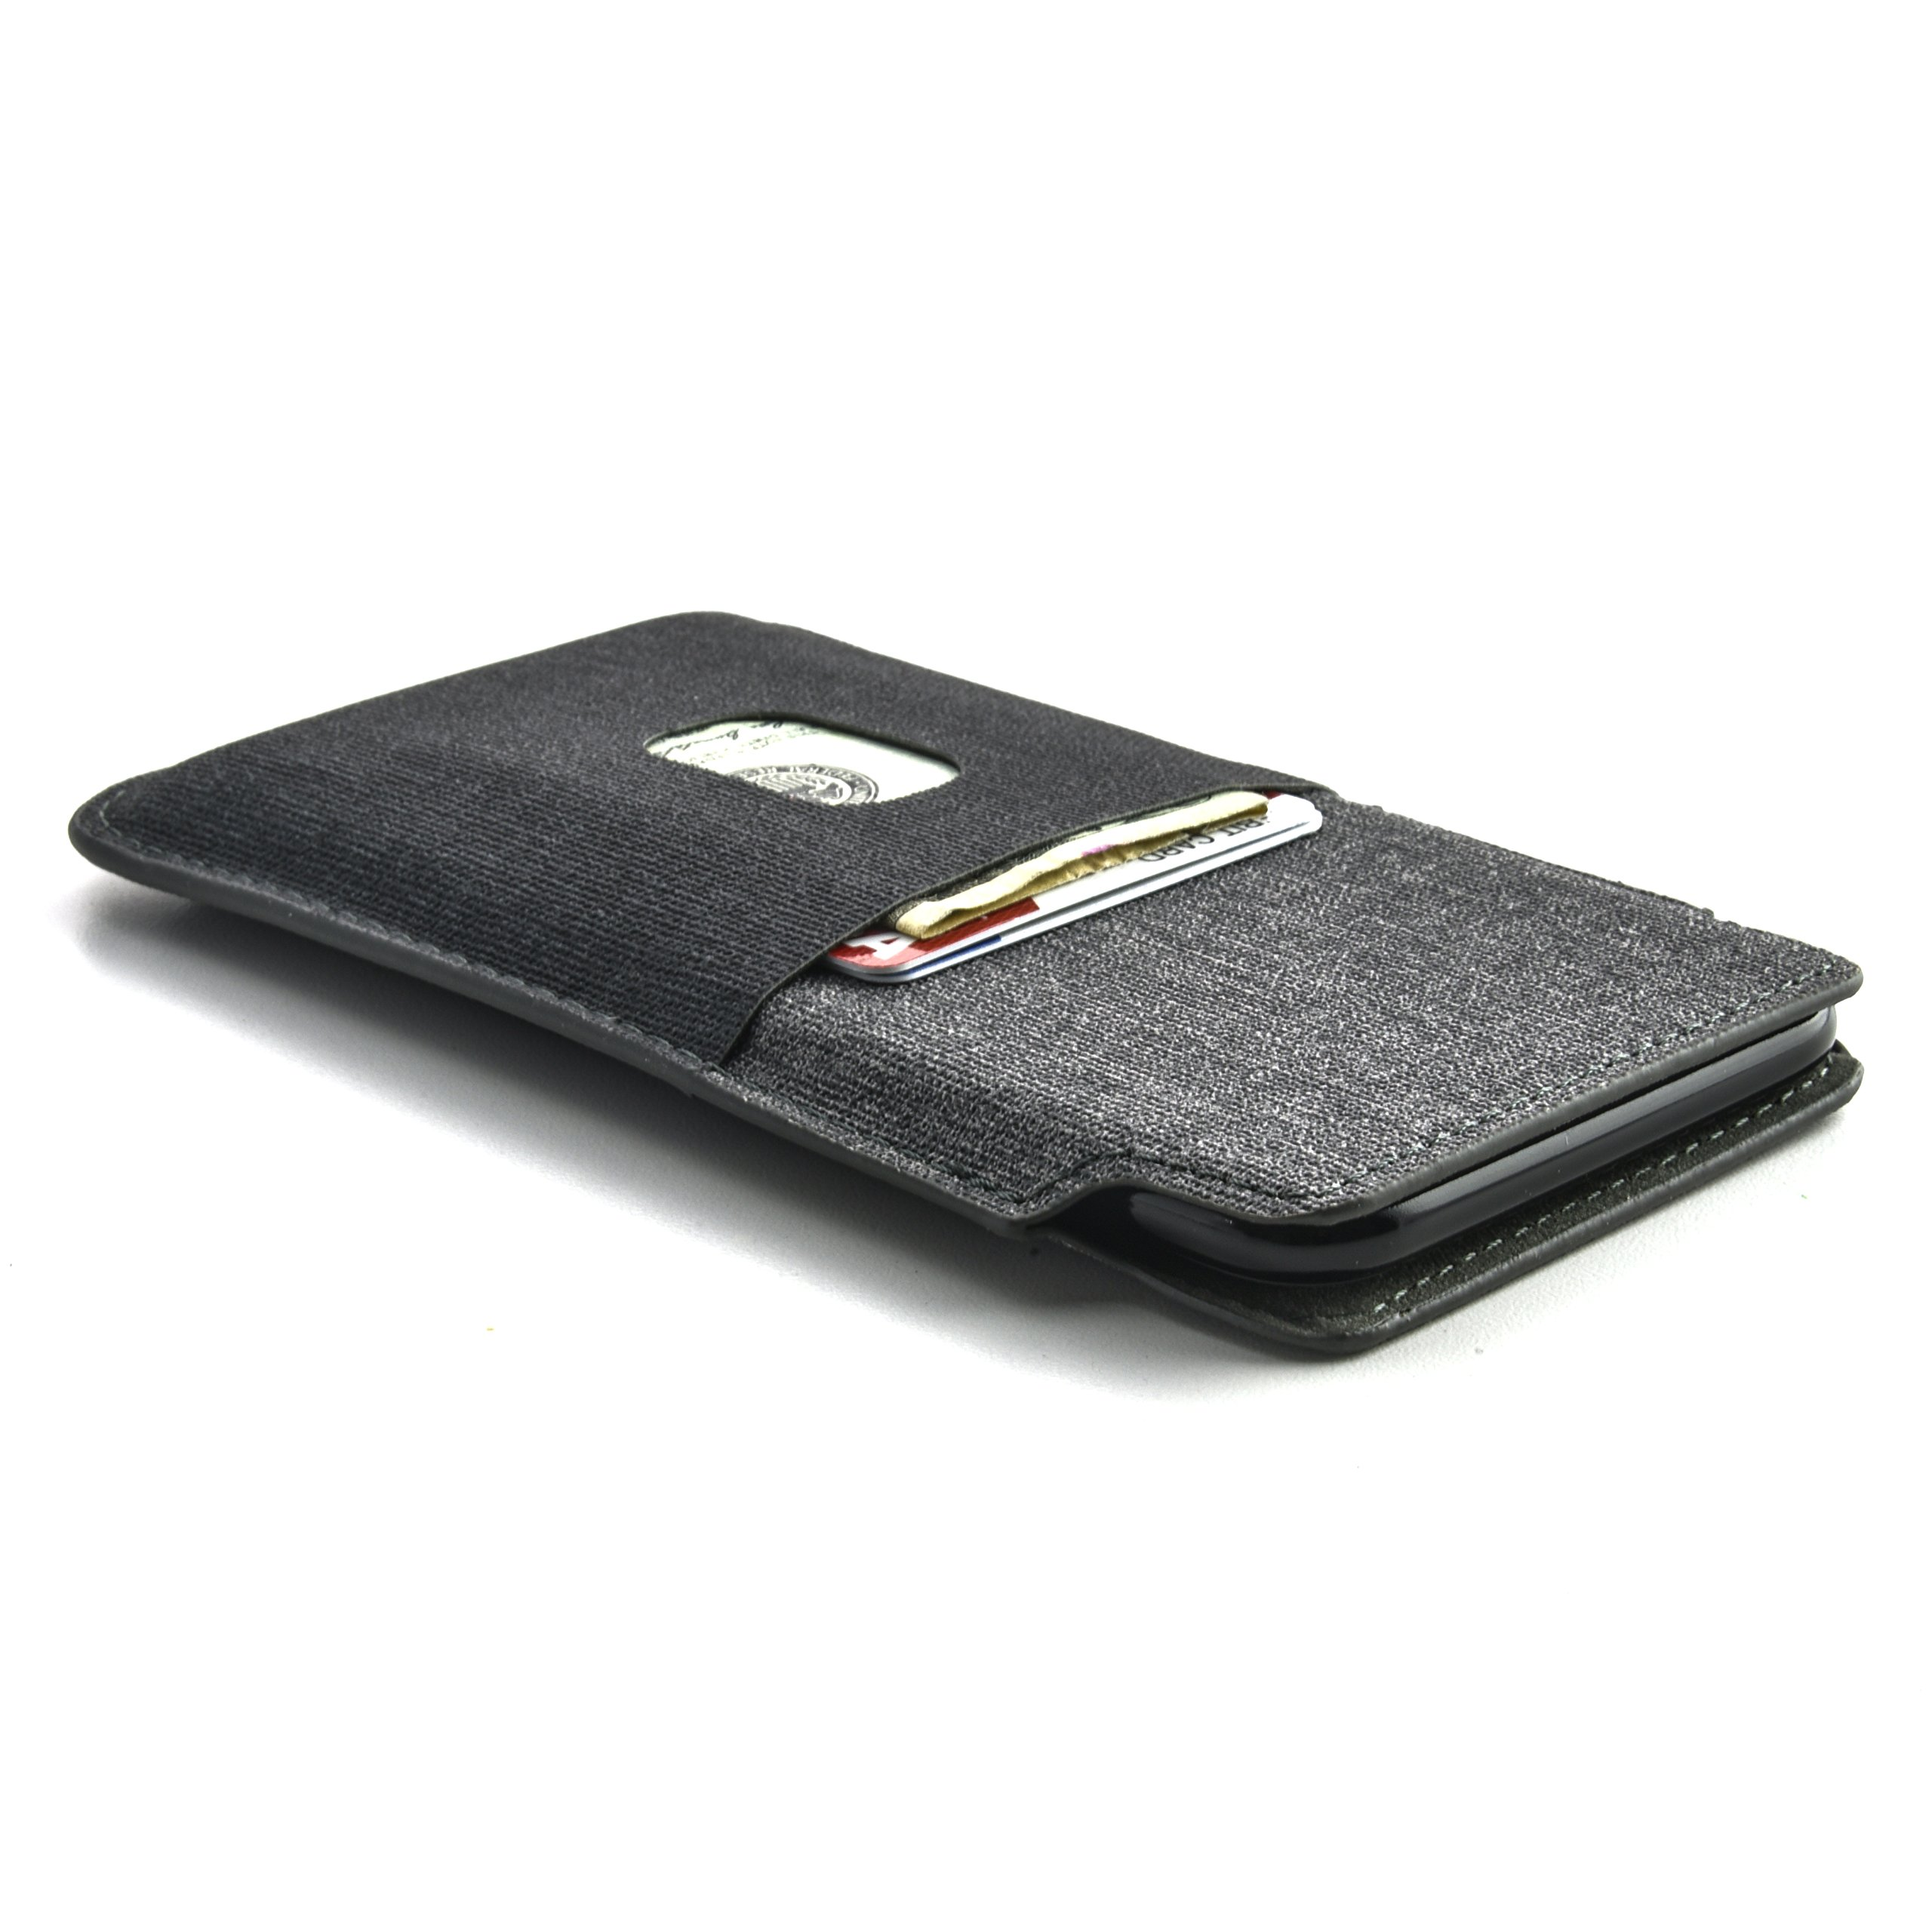 Dockem Luxe Wallet Sleeve for iPhone Xs & iPhone X: Synthetic Leather Card Case in Twill Canvas Style: Ultra Slim Professional Executive Pouch Cover with 2 Card Holder Slots [Black and Grey] by Dockem